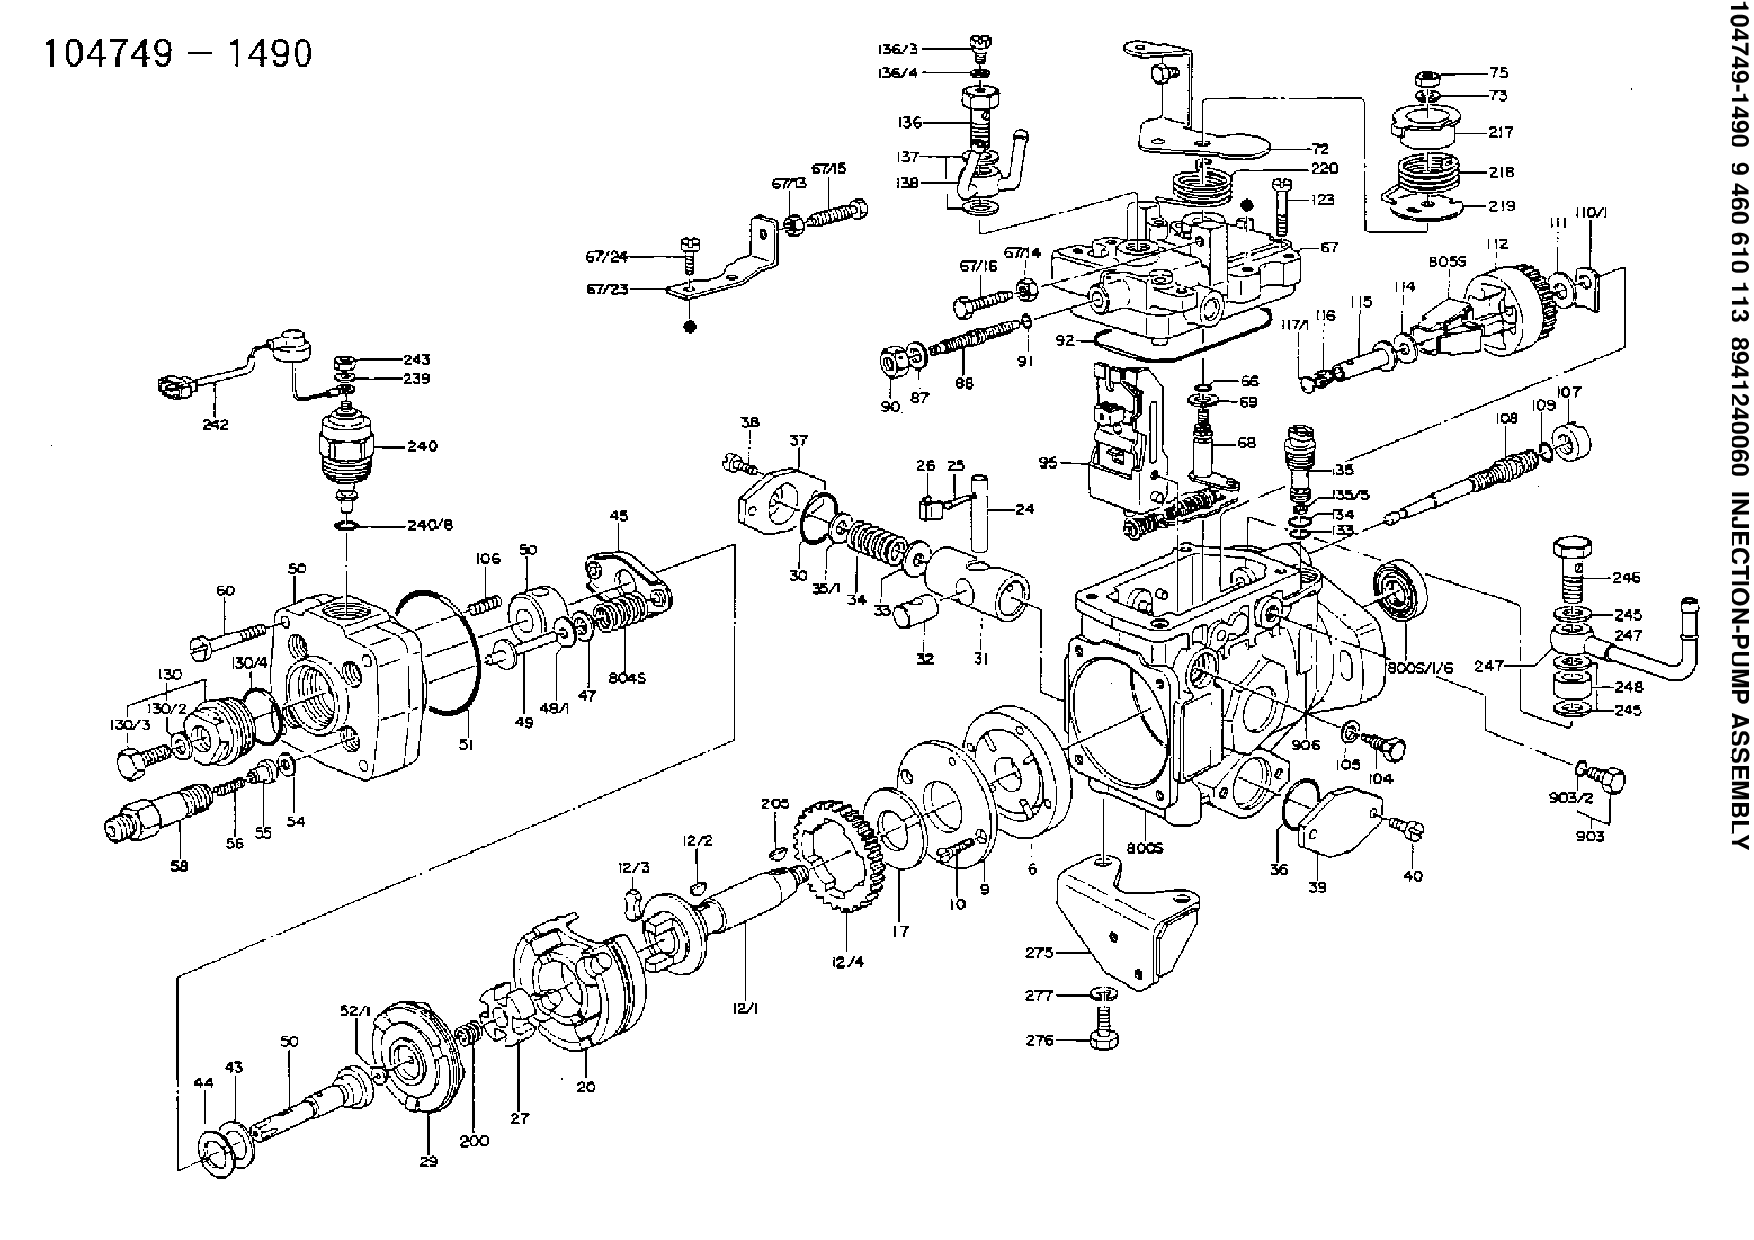 Kubota Bx25 Diagram